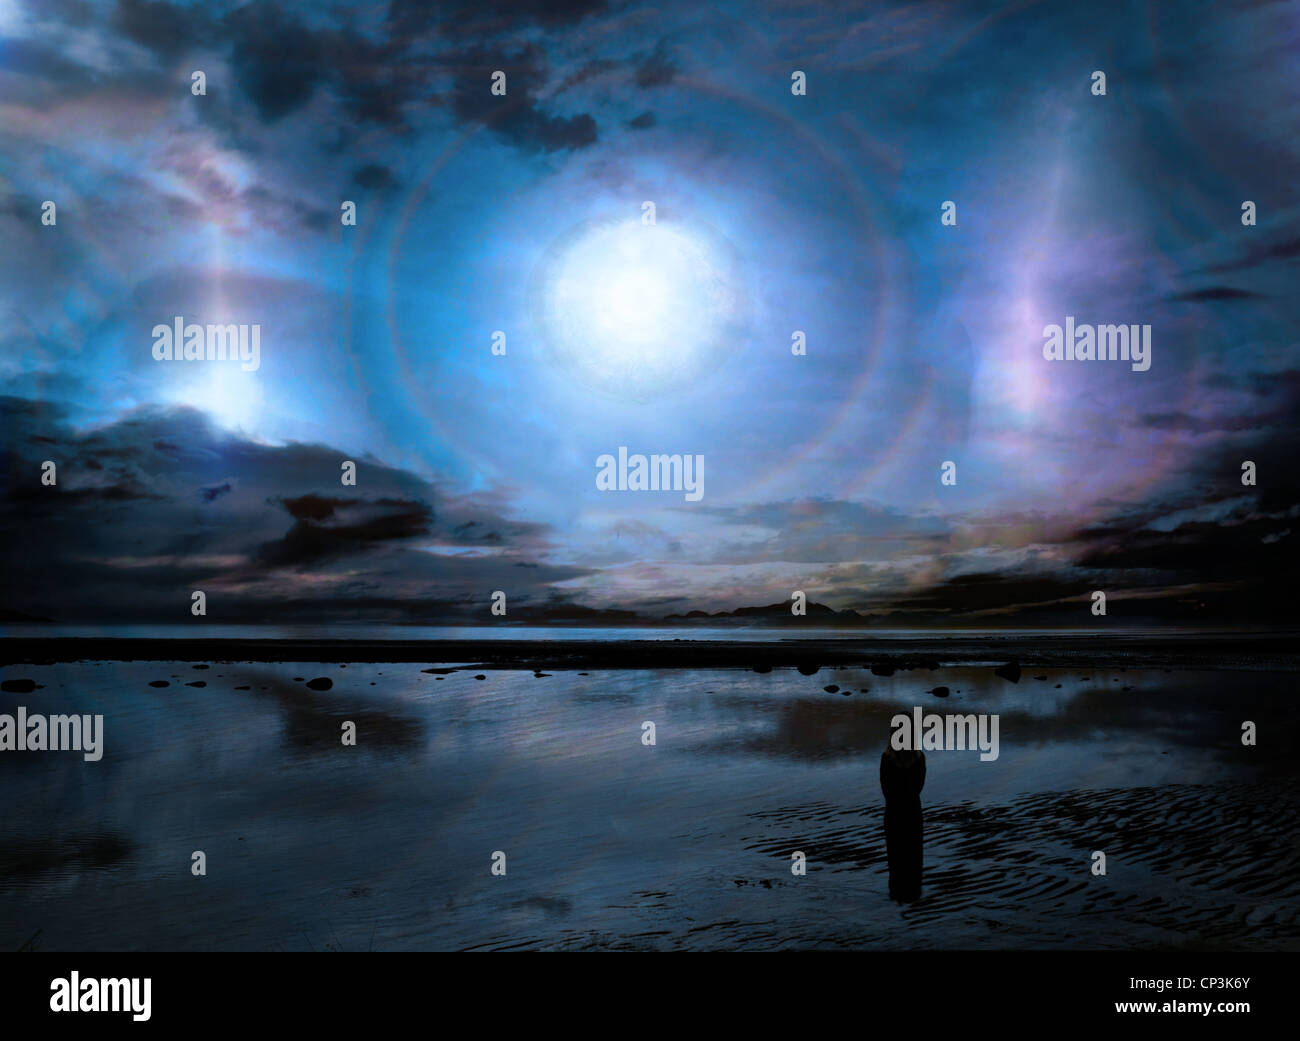 Fantasy science fiction scene with an amazing sky and a silhouetted woman observing it. - Stock Image